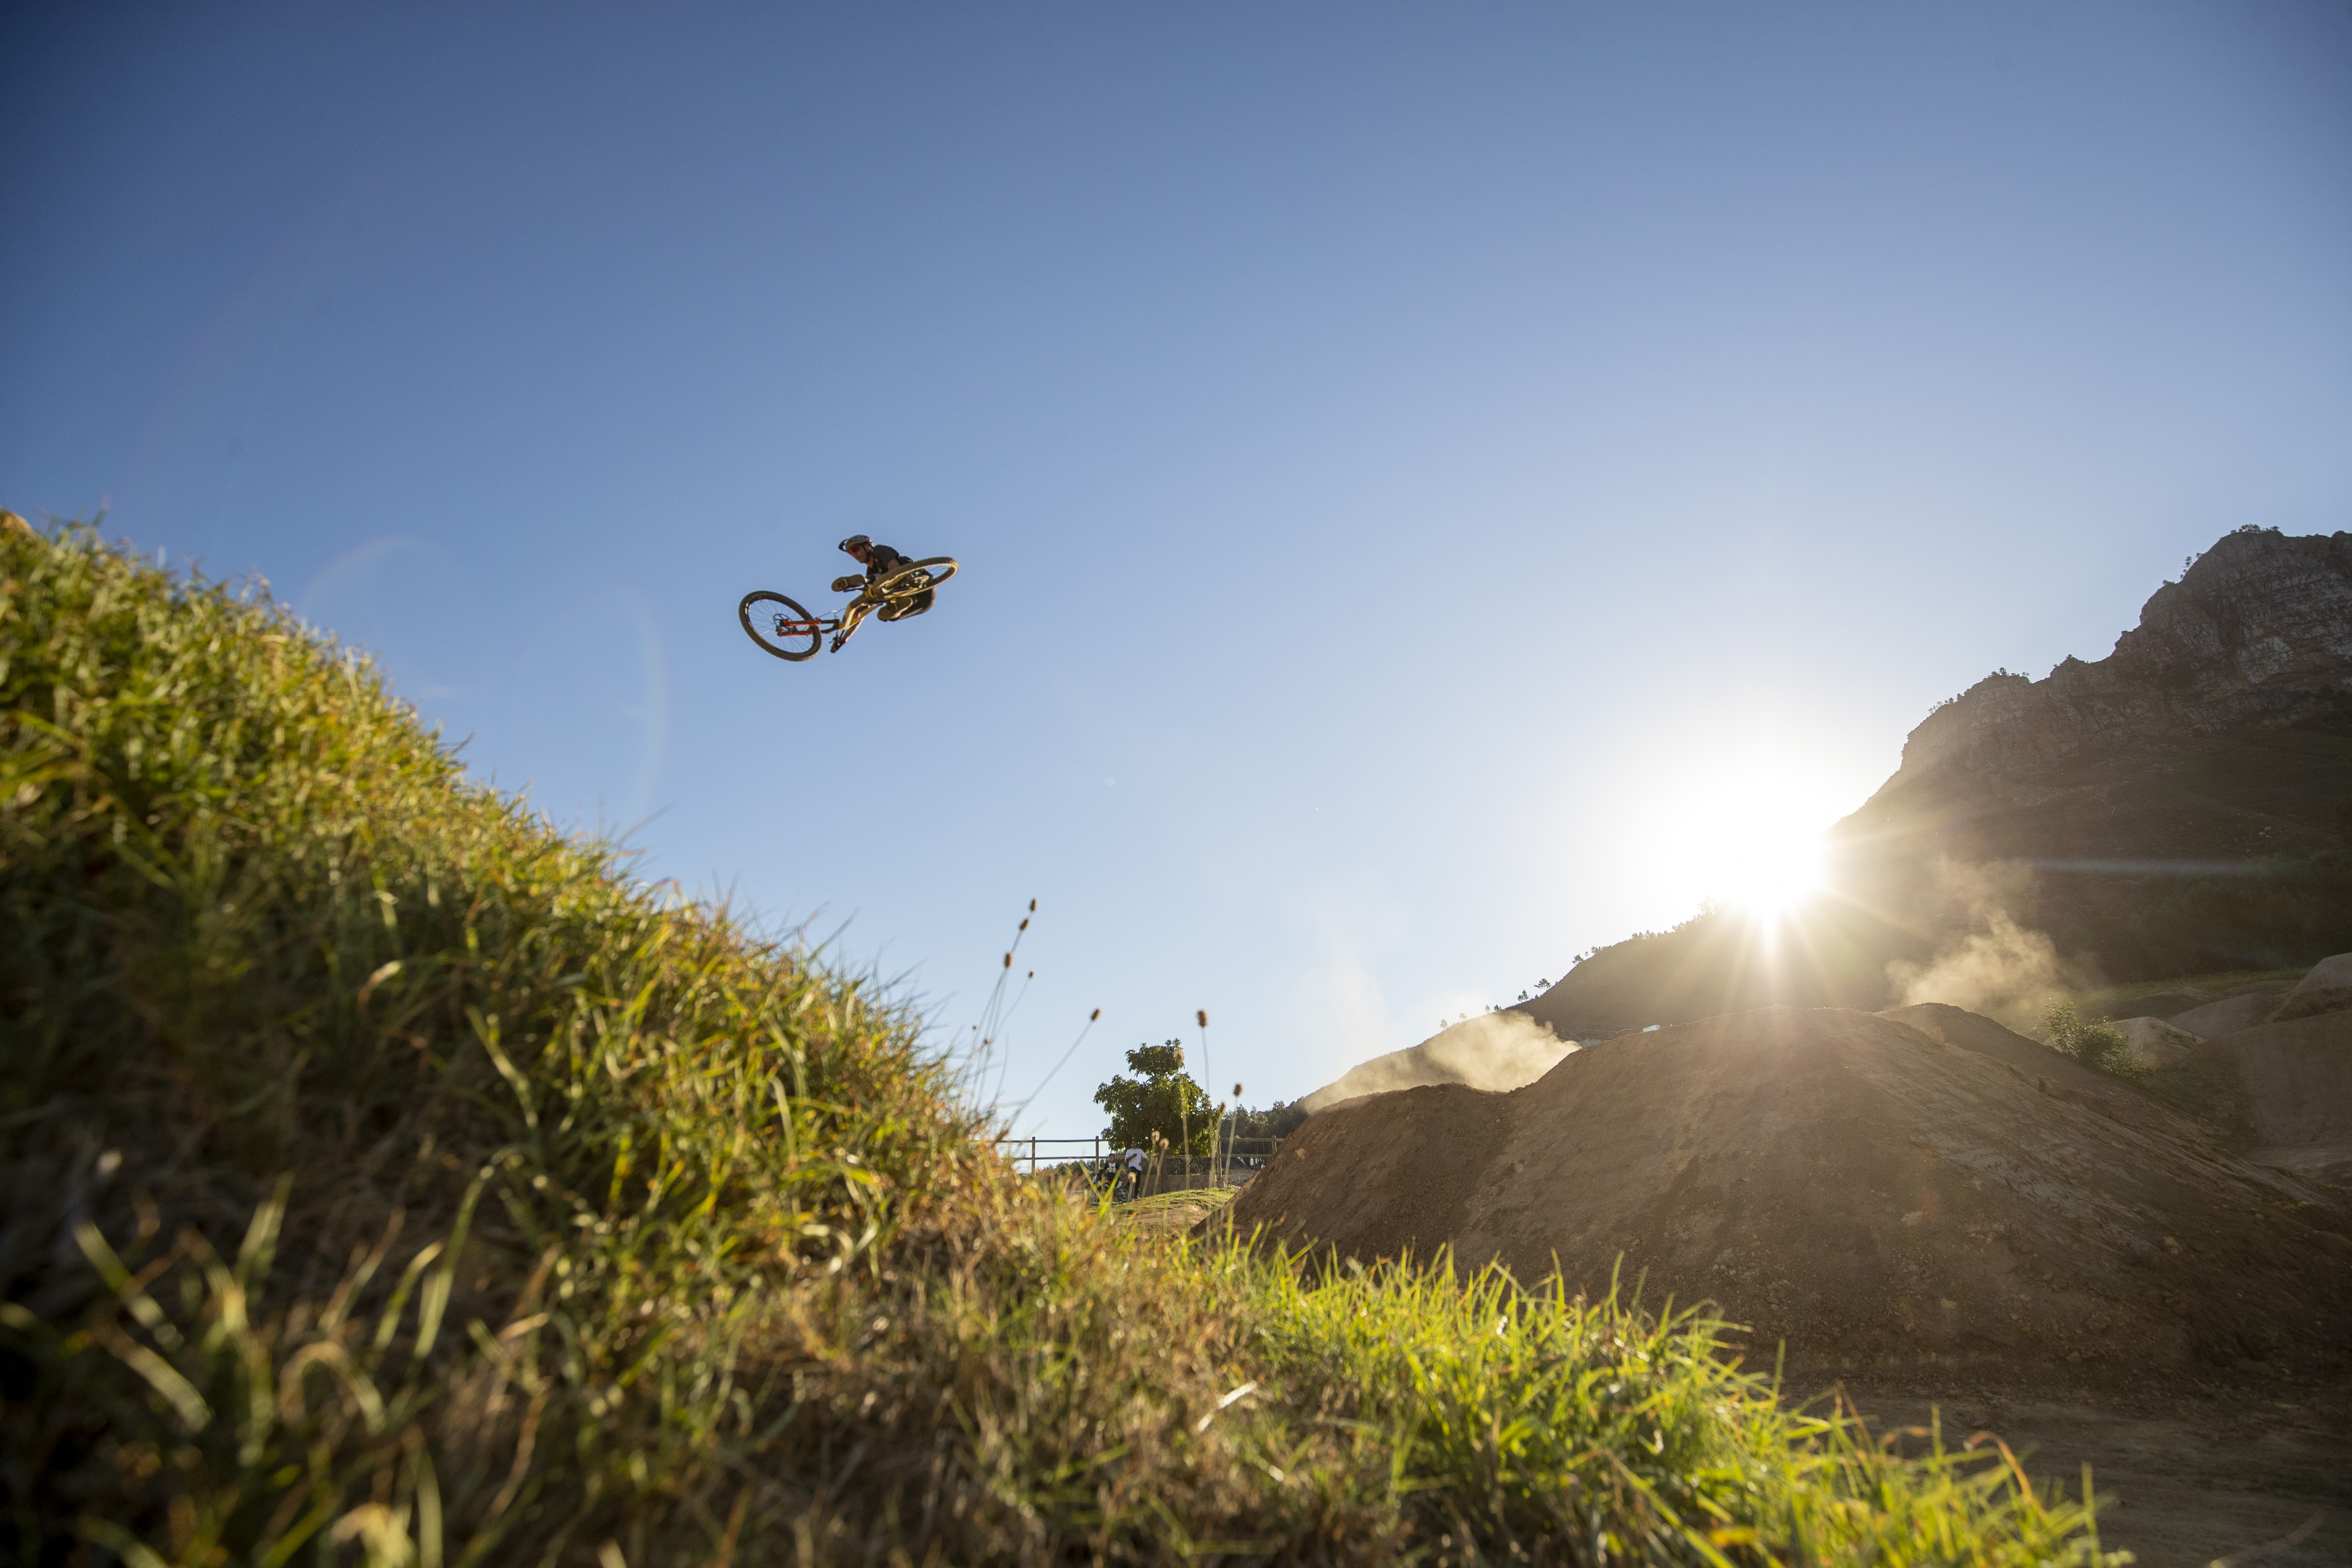 145 World Cup DH Races, 110 Top-10 Finishes - Greg Minnaar - GREATEST OF ALL TIME